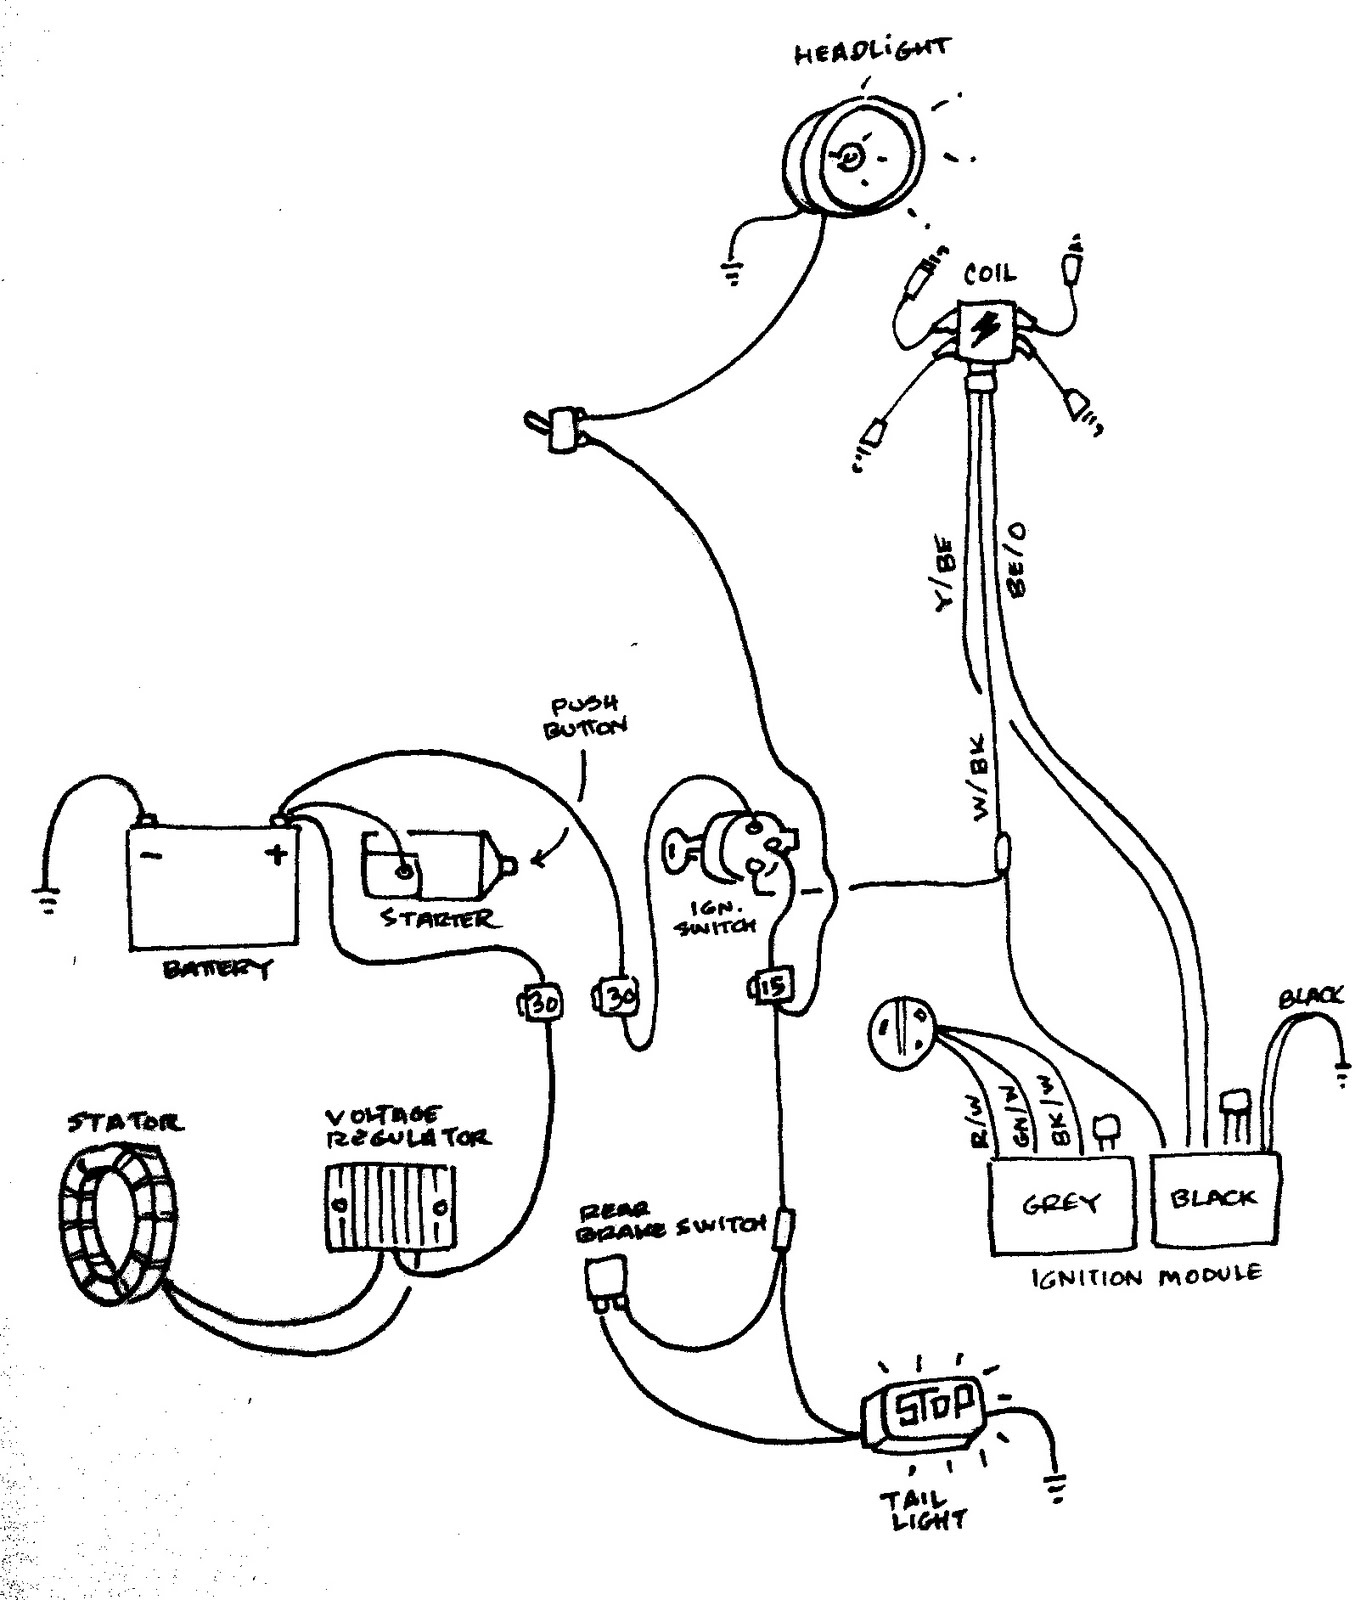 49cc 2 stroke with electric starter wiring diagram